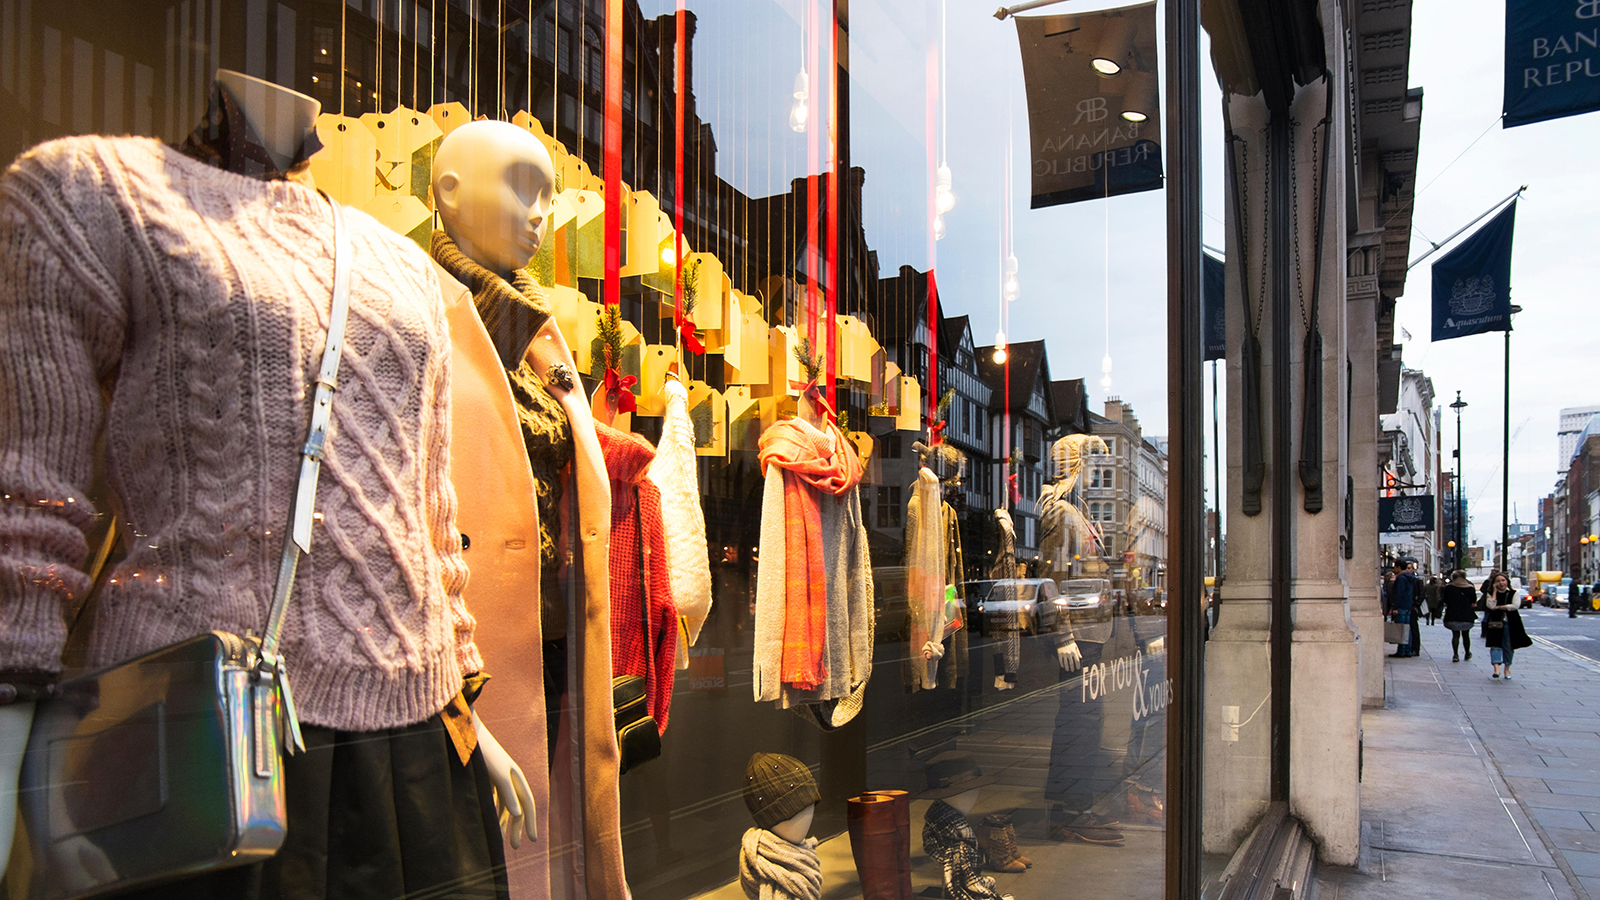 Learners clothing store